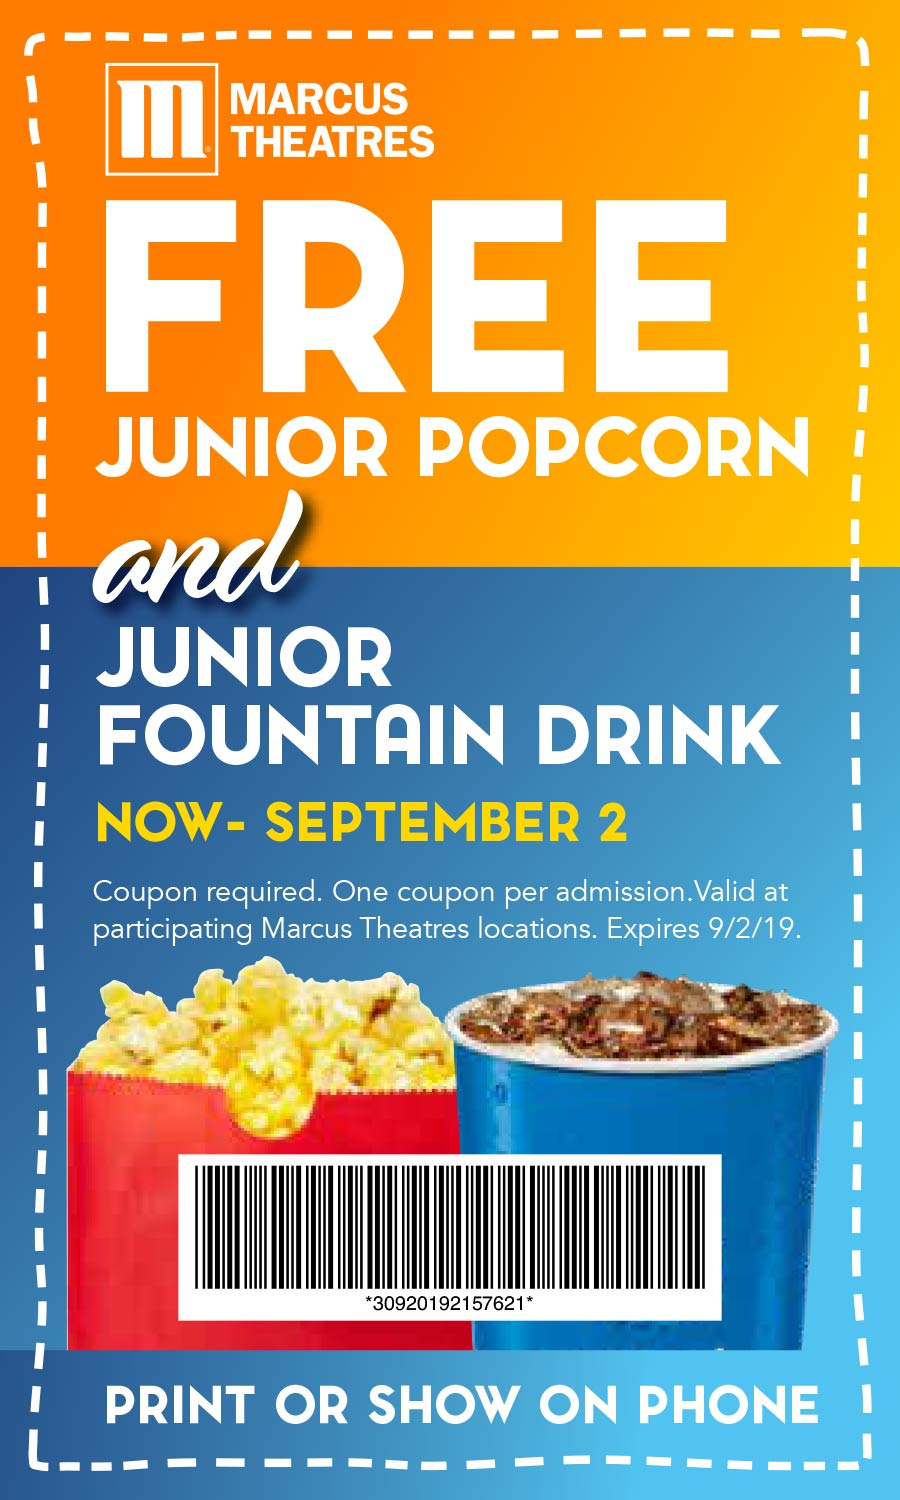 Marcus Theatres Coupon October 2019 Free popcorn + drink at Marcus Theatres